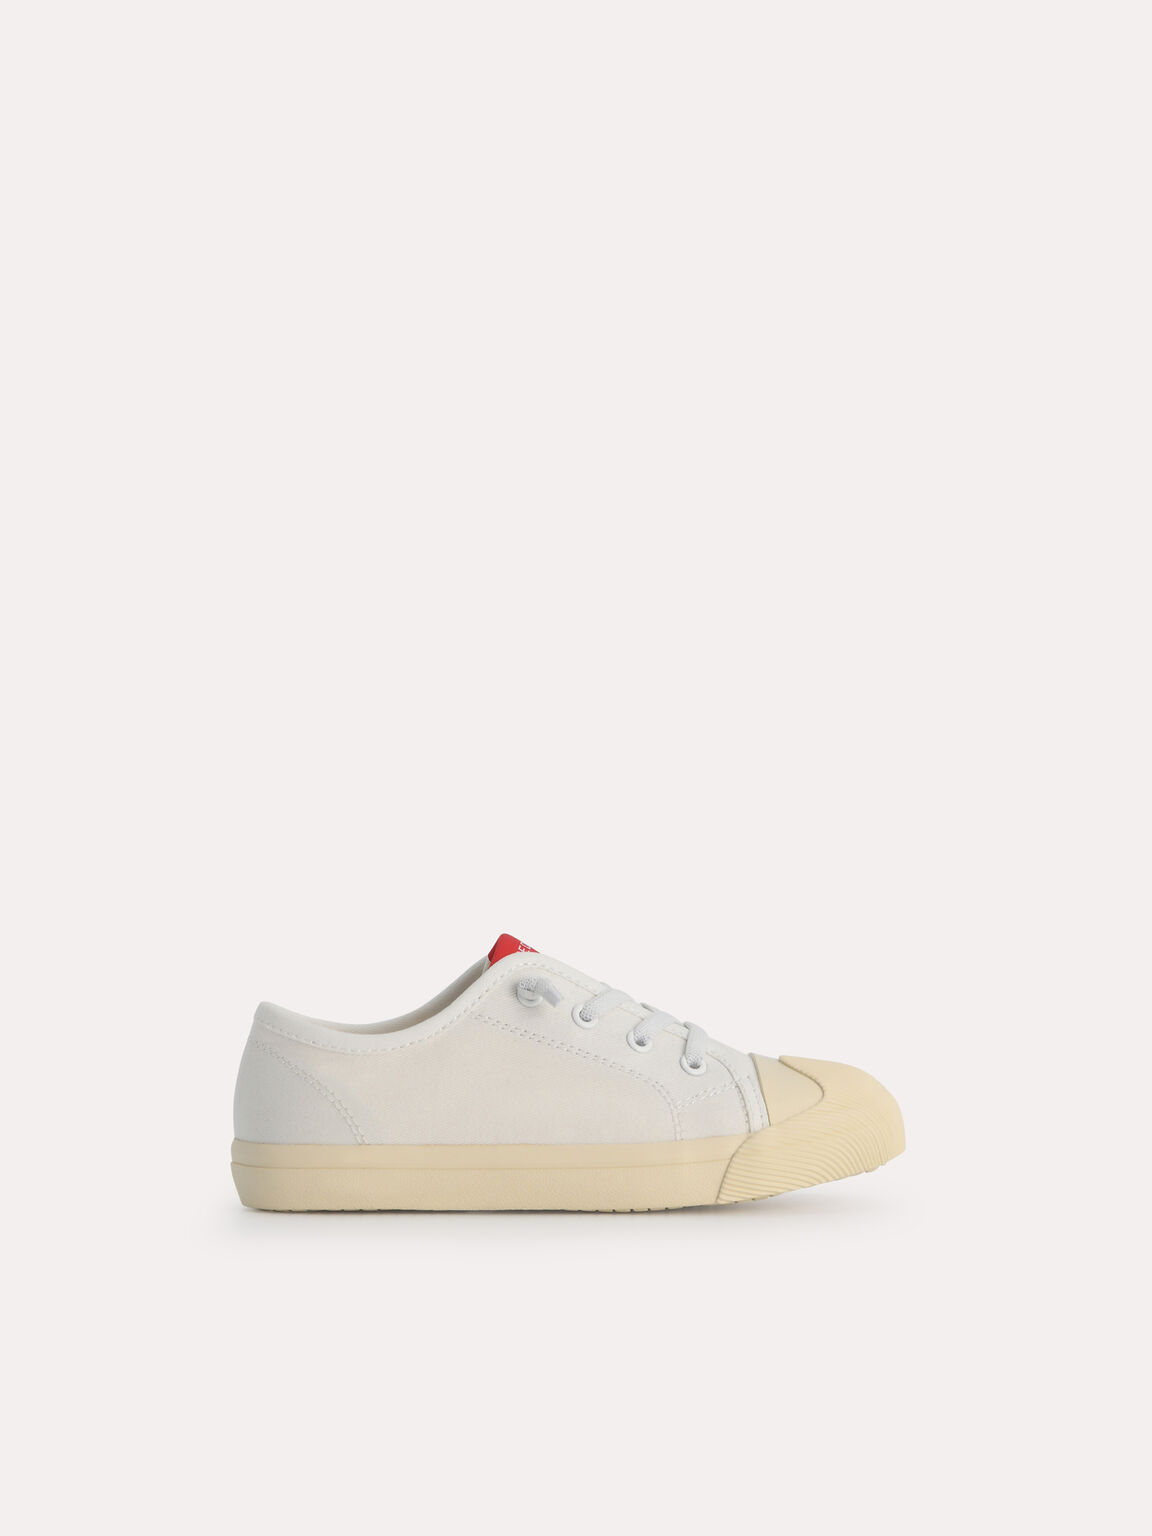 Casual Sneakers, White, hi-res